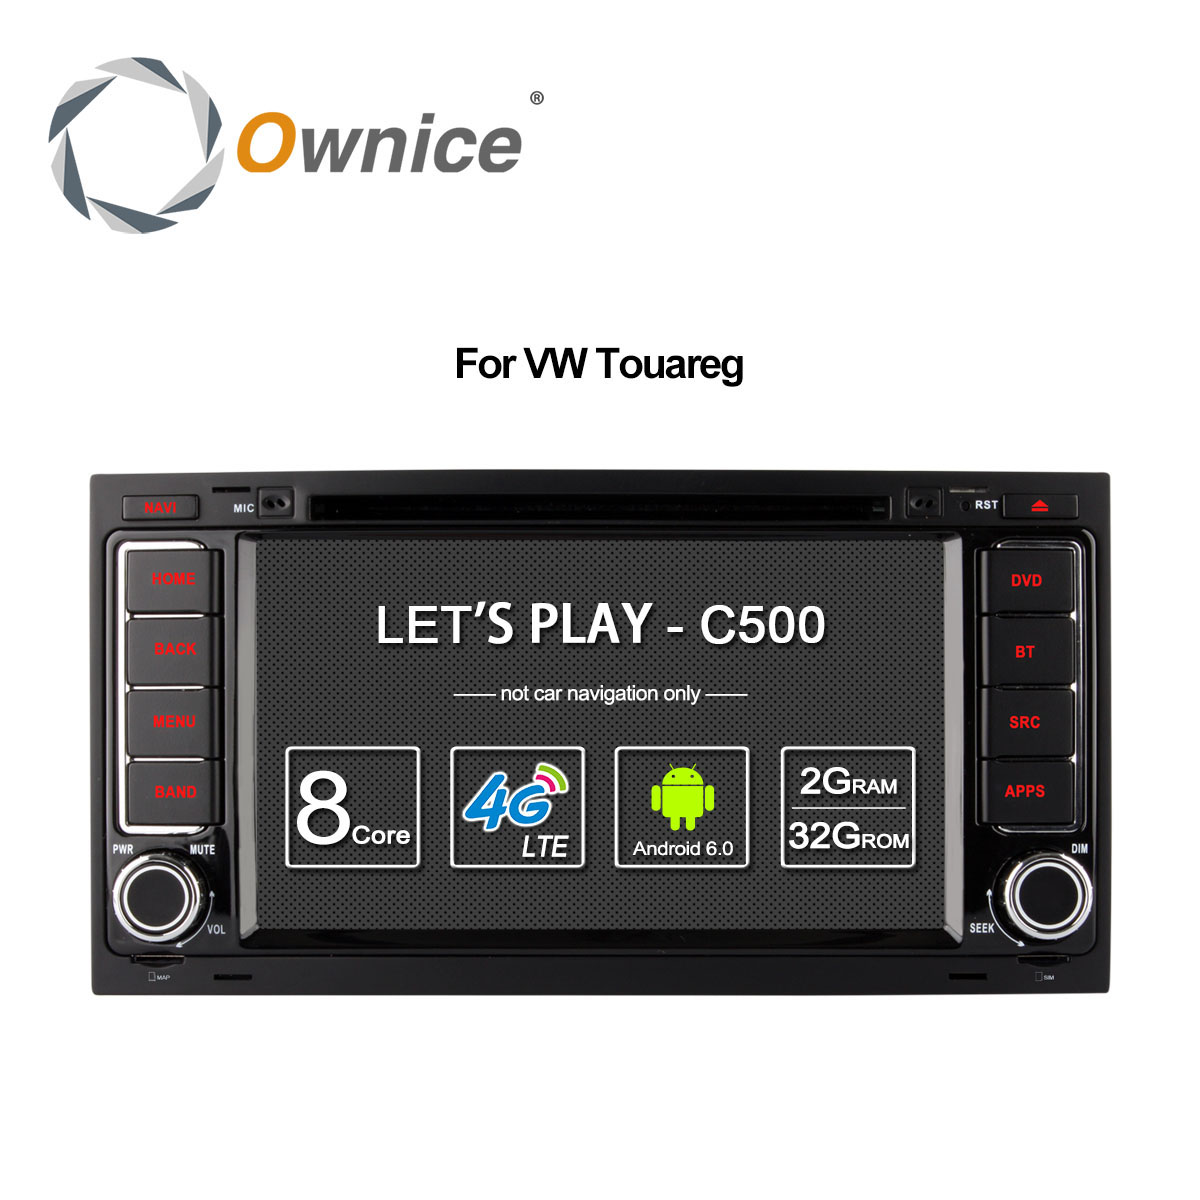 Ownice Android 6 0 4G SIM LTE Octa Core 2G RAM Car DVD GPS Radio for